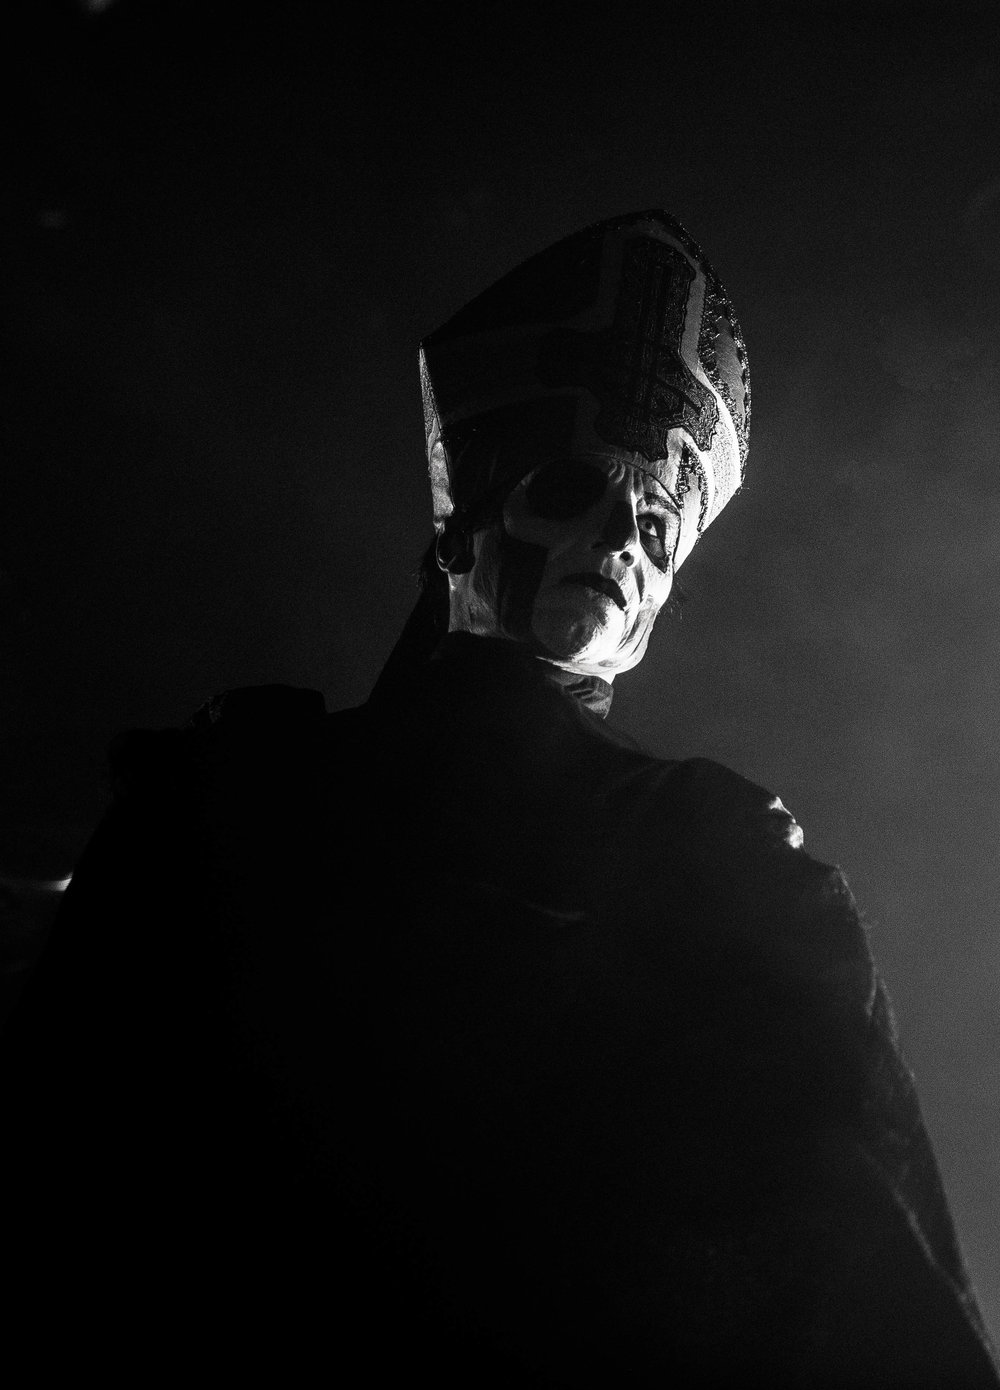 Papa Emeritus III of Ghost Popestar Tour 2017 @ Fillmore Auditorium in Denver © 2017 Kristin Kesterson (@kristinkestersonphoto)